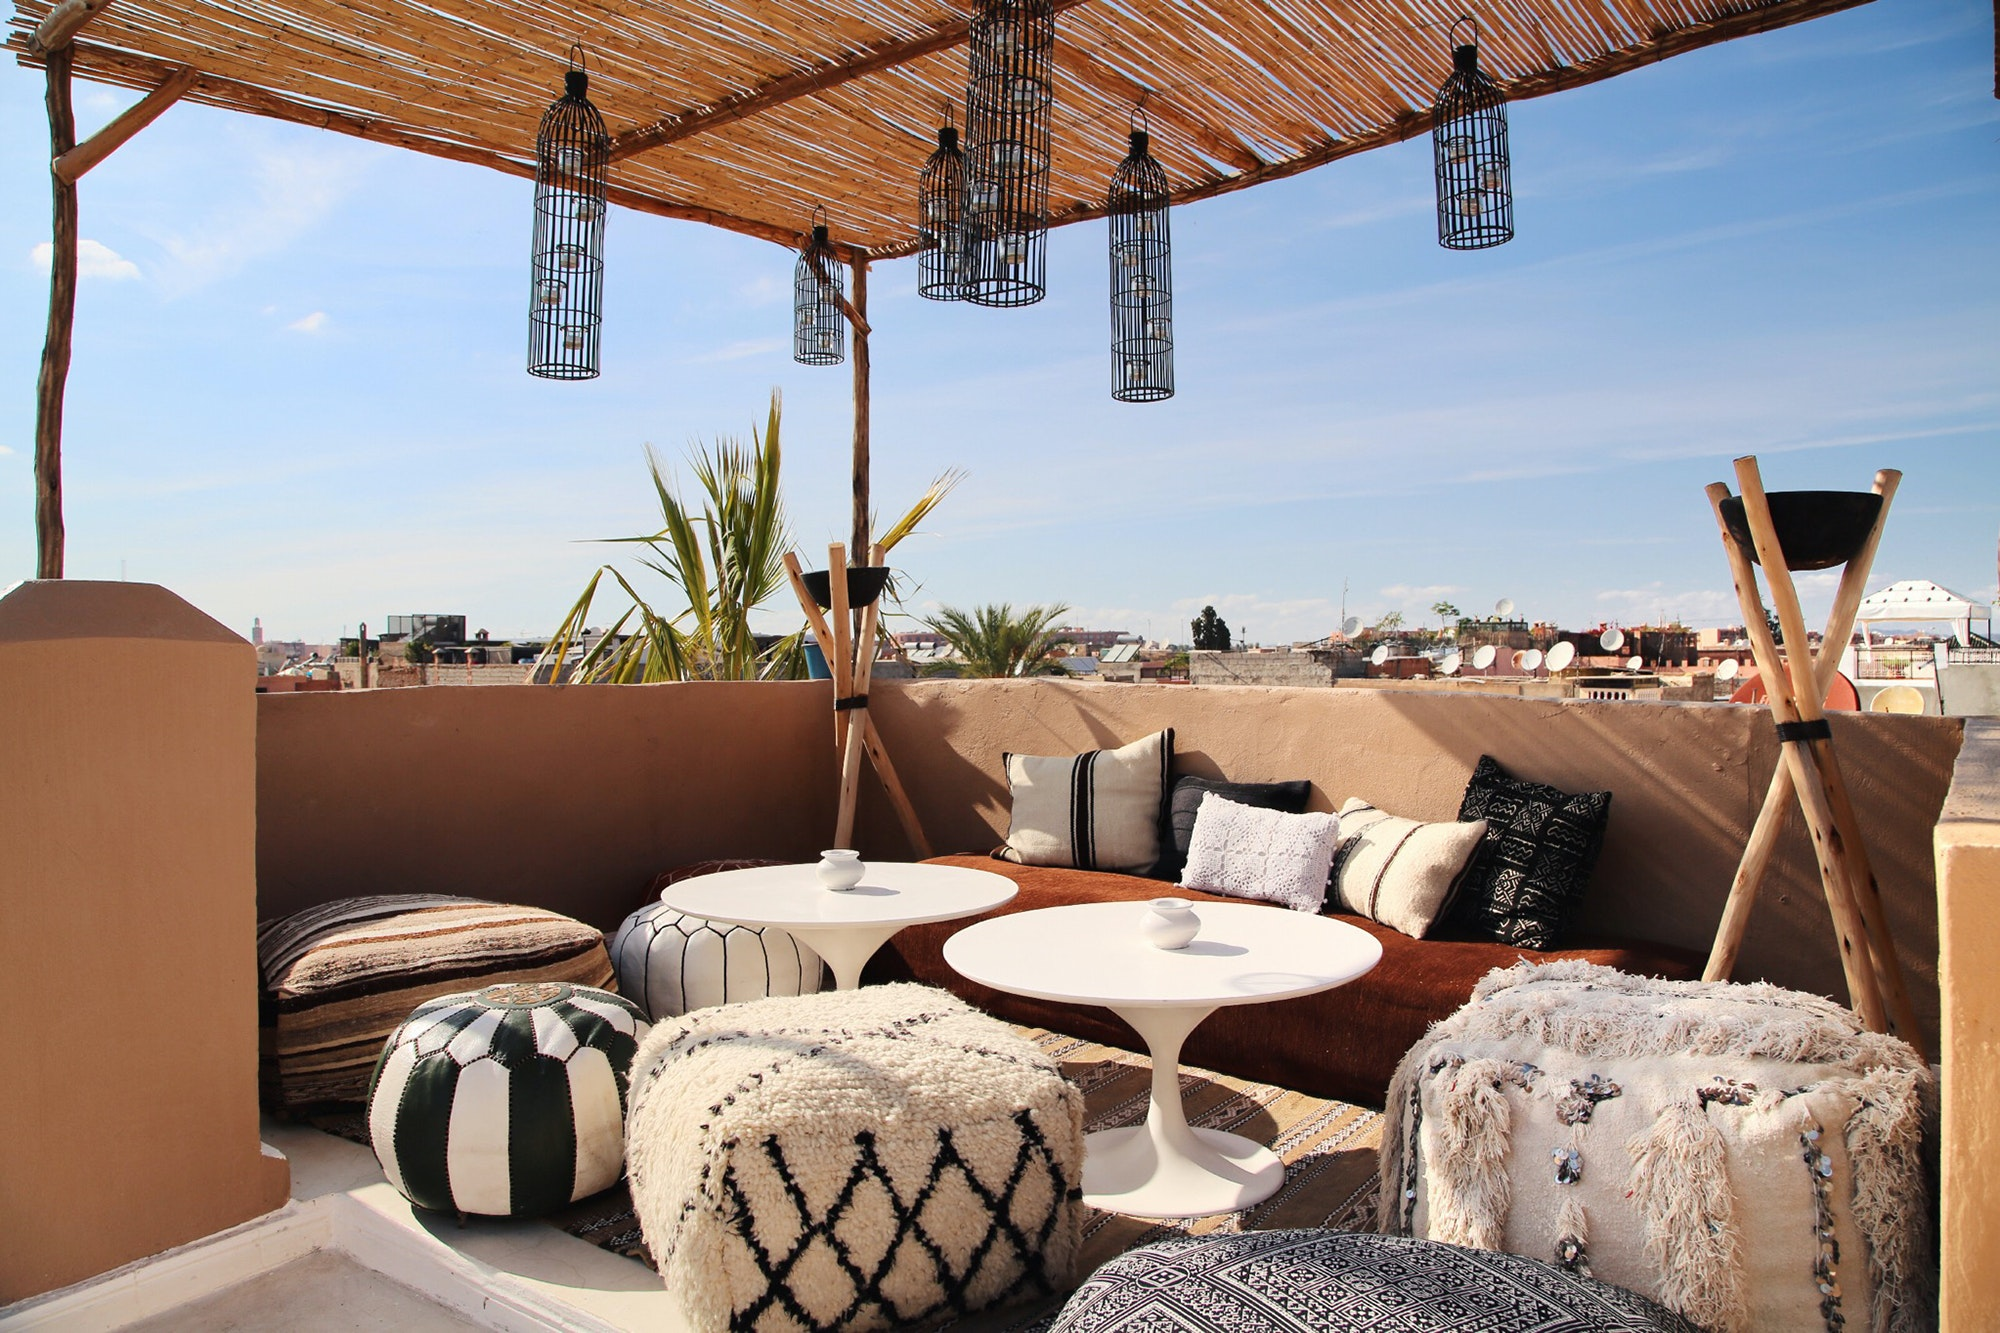 The rooftop lounge at Riad Shiraz offers sweeping views of the city.